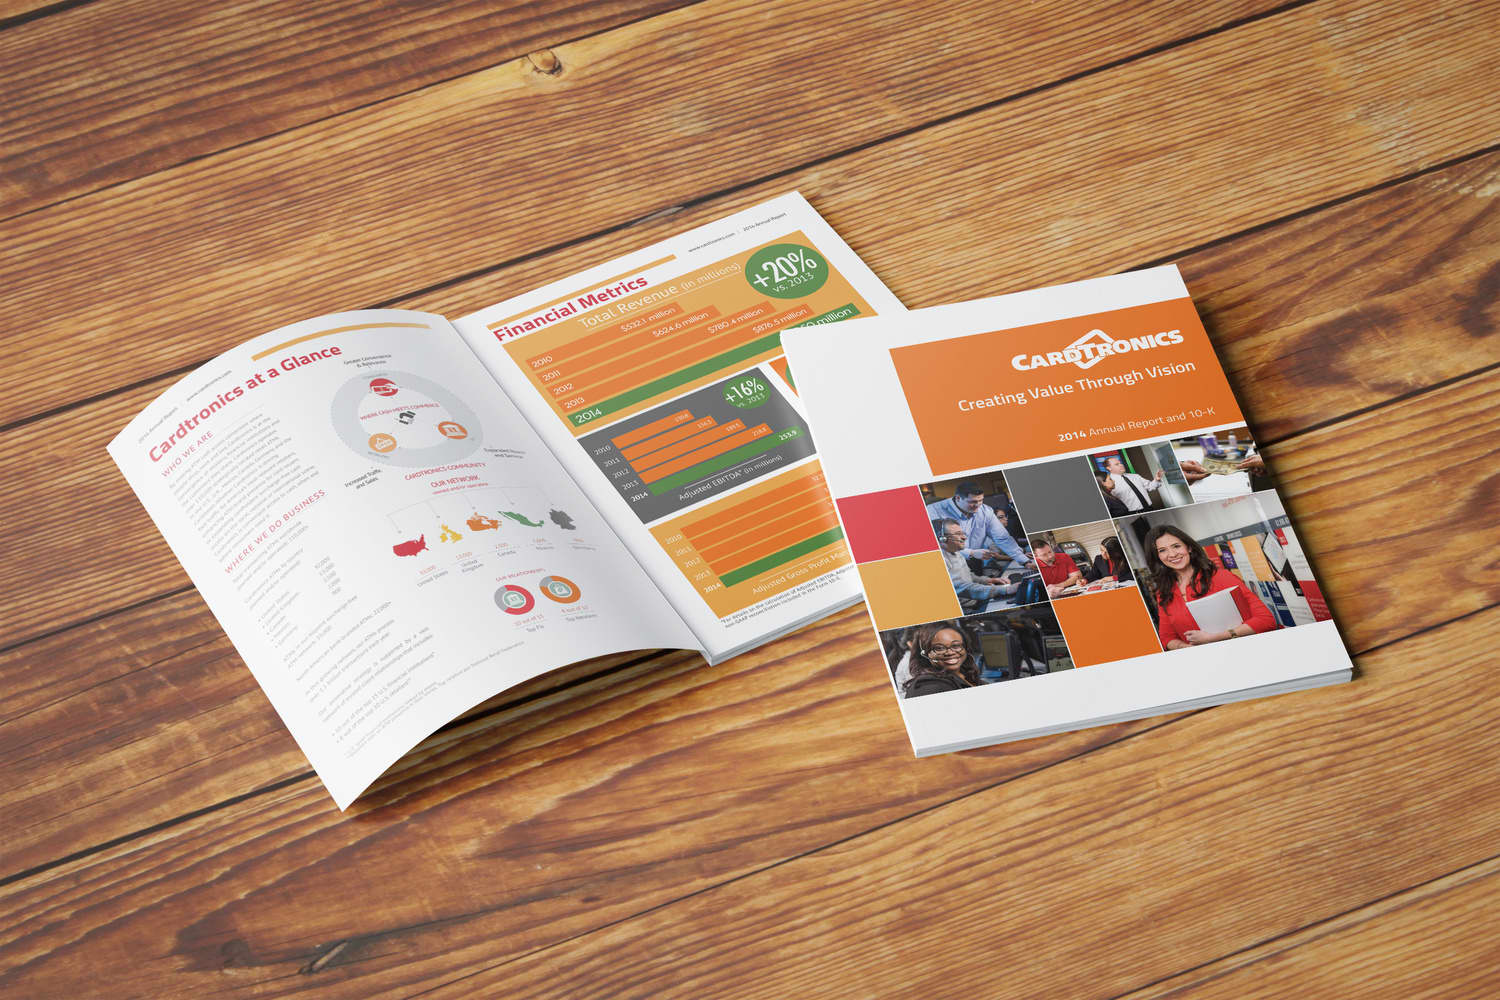 Cardtronics, Inc Annual Report